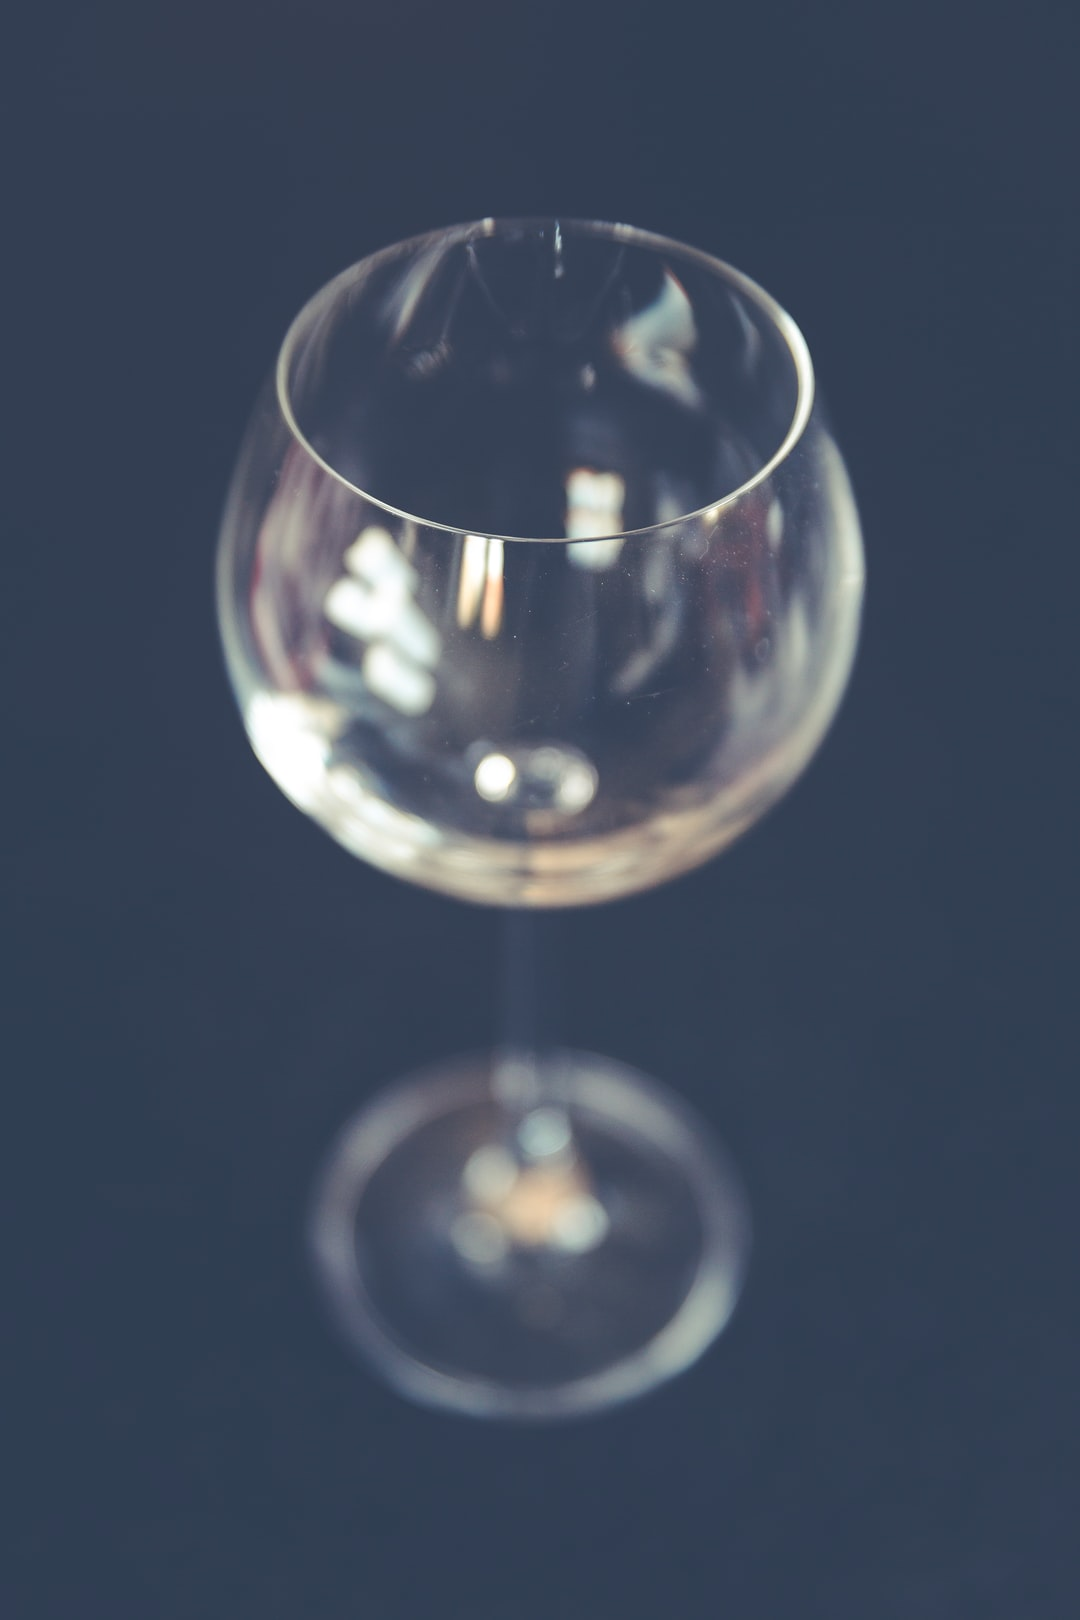 Wine glass from up close